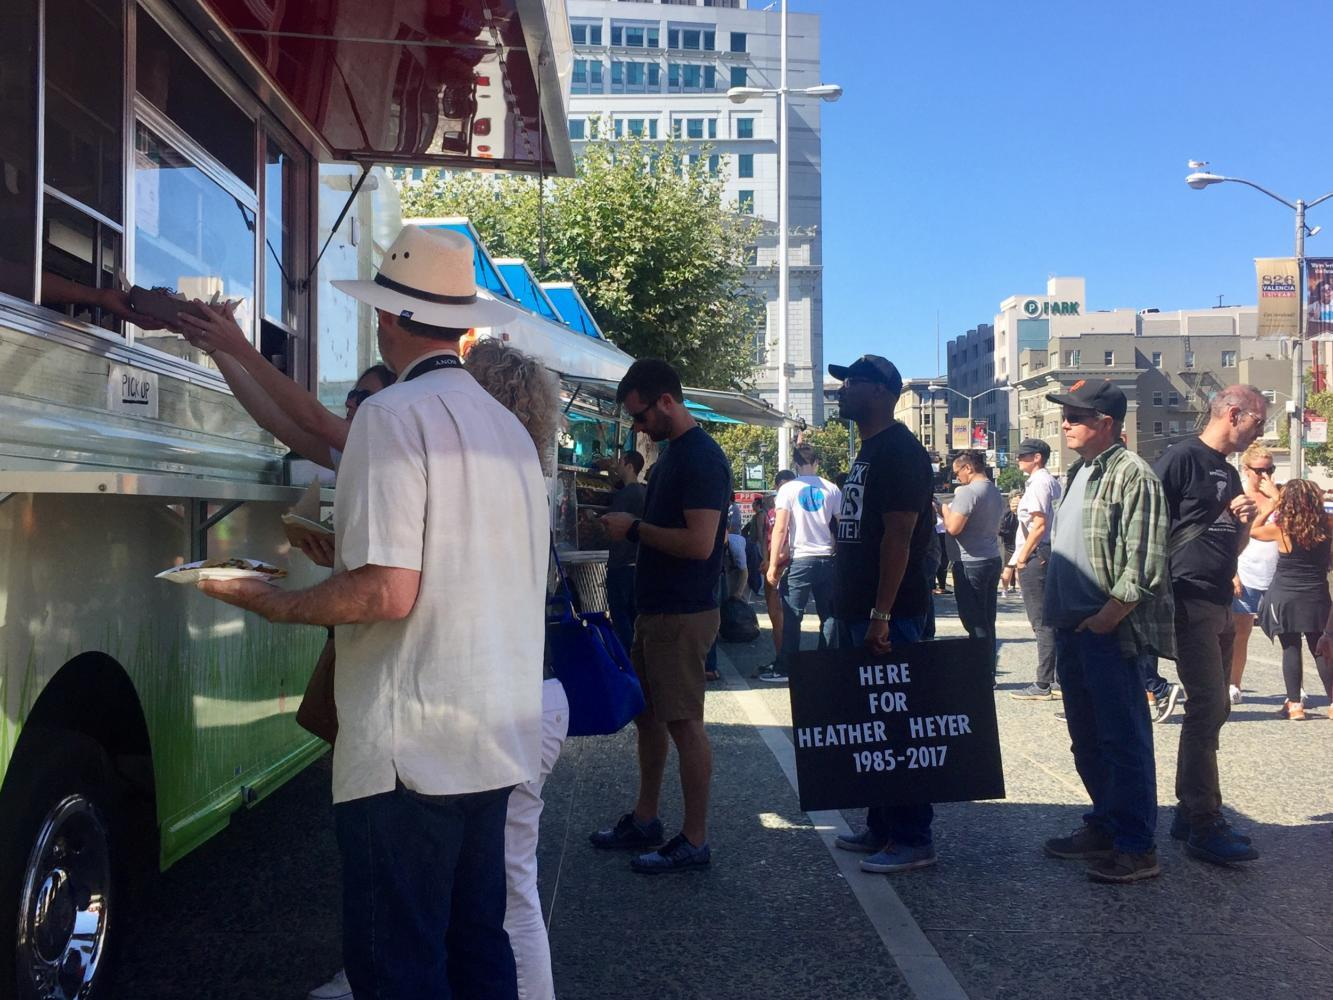 Peaceful protesters stand in line to buy food from a food truck at the rally. One man holds a